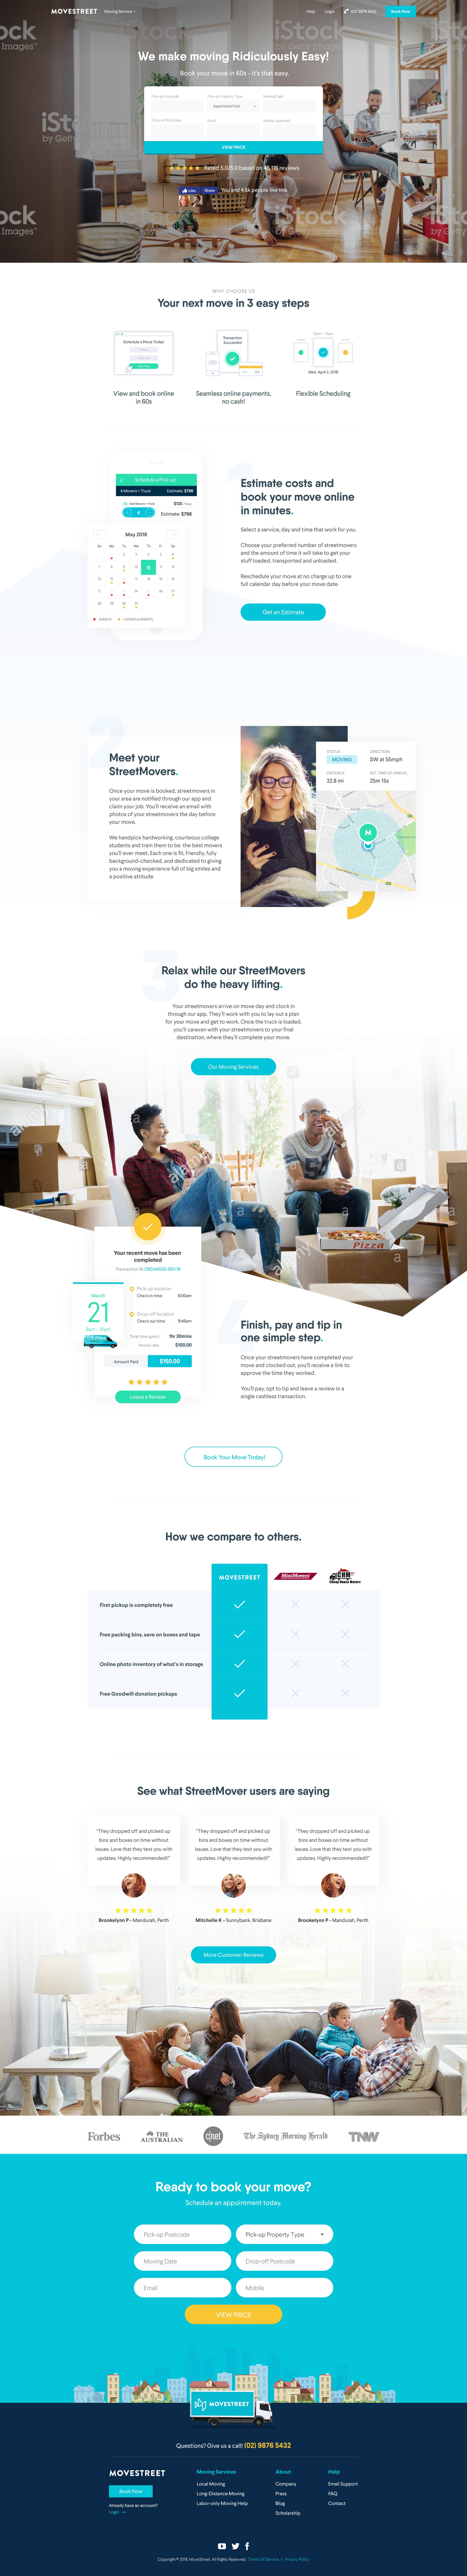 MOVESTREET is a venture backed tech start-up moving co